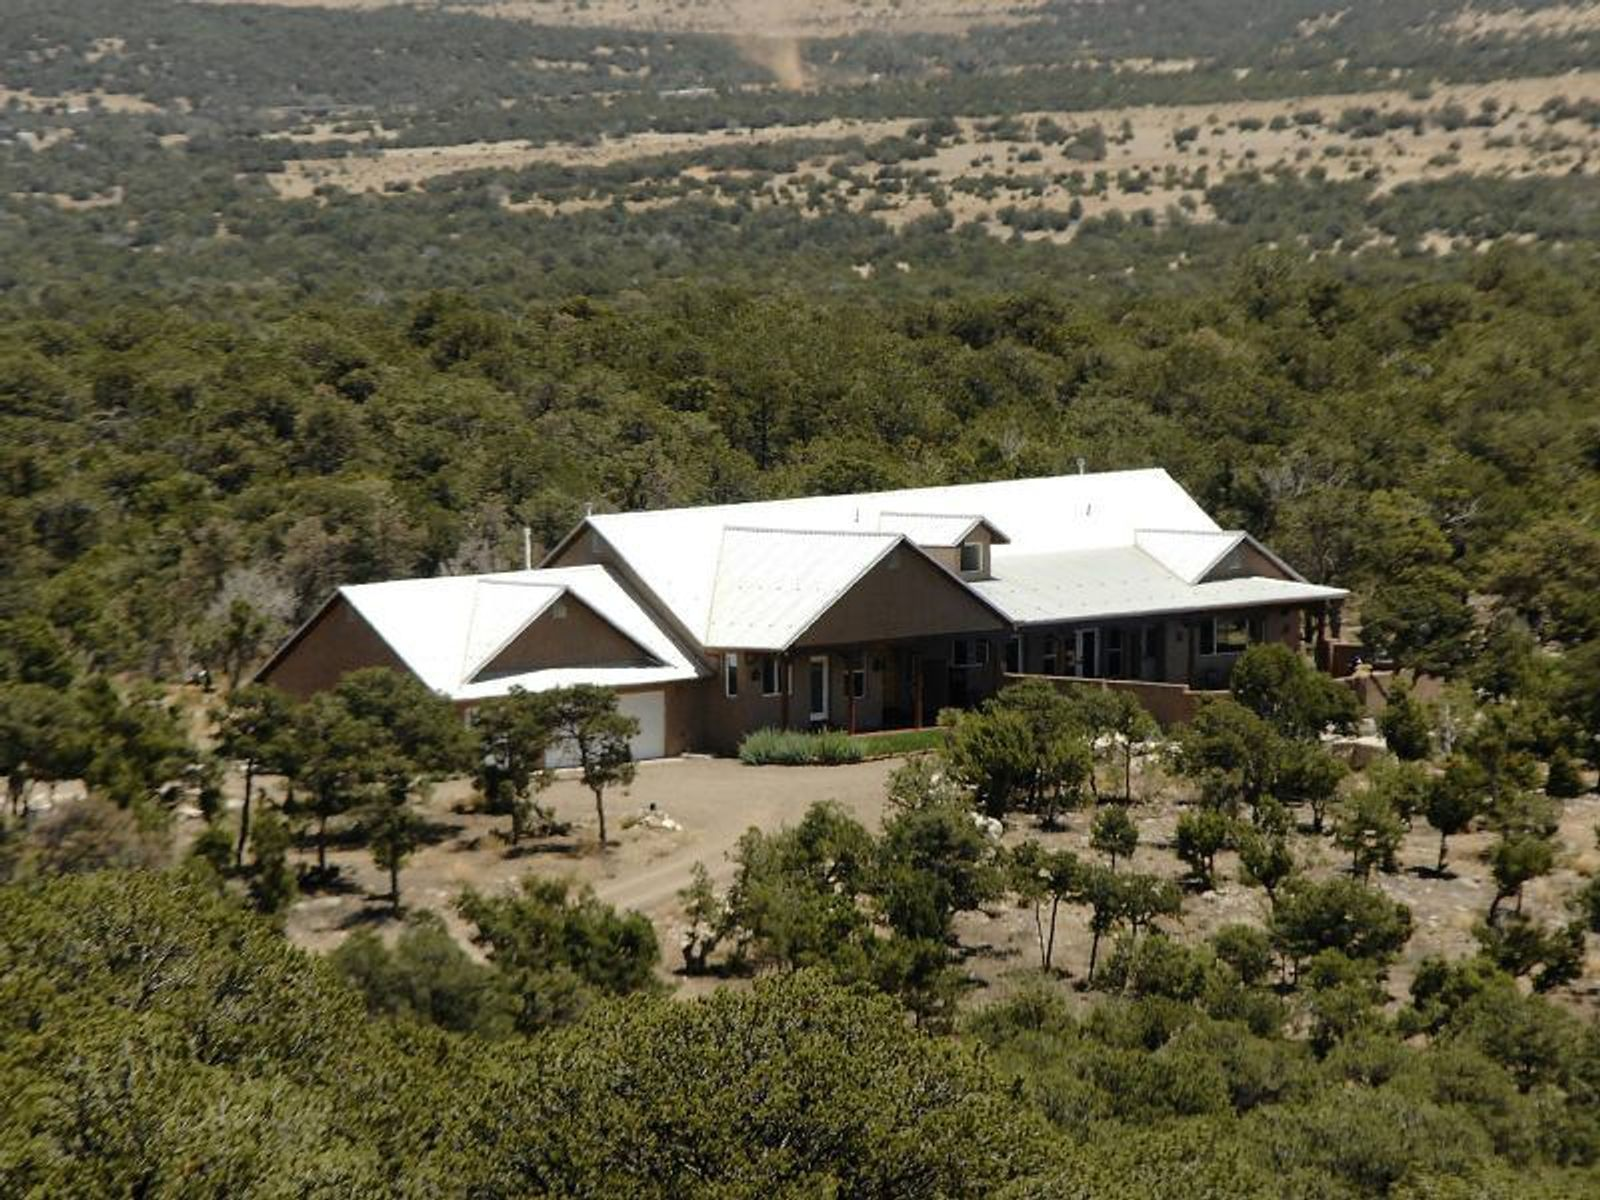 121 Forest Road 321, Tajique NM Single Family Home - Santa Fe Real Estate